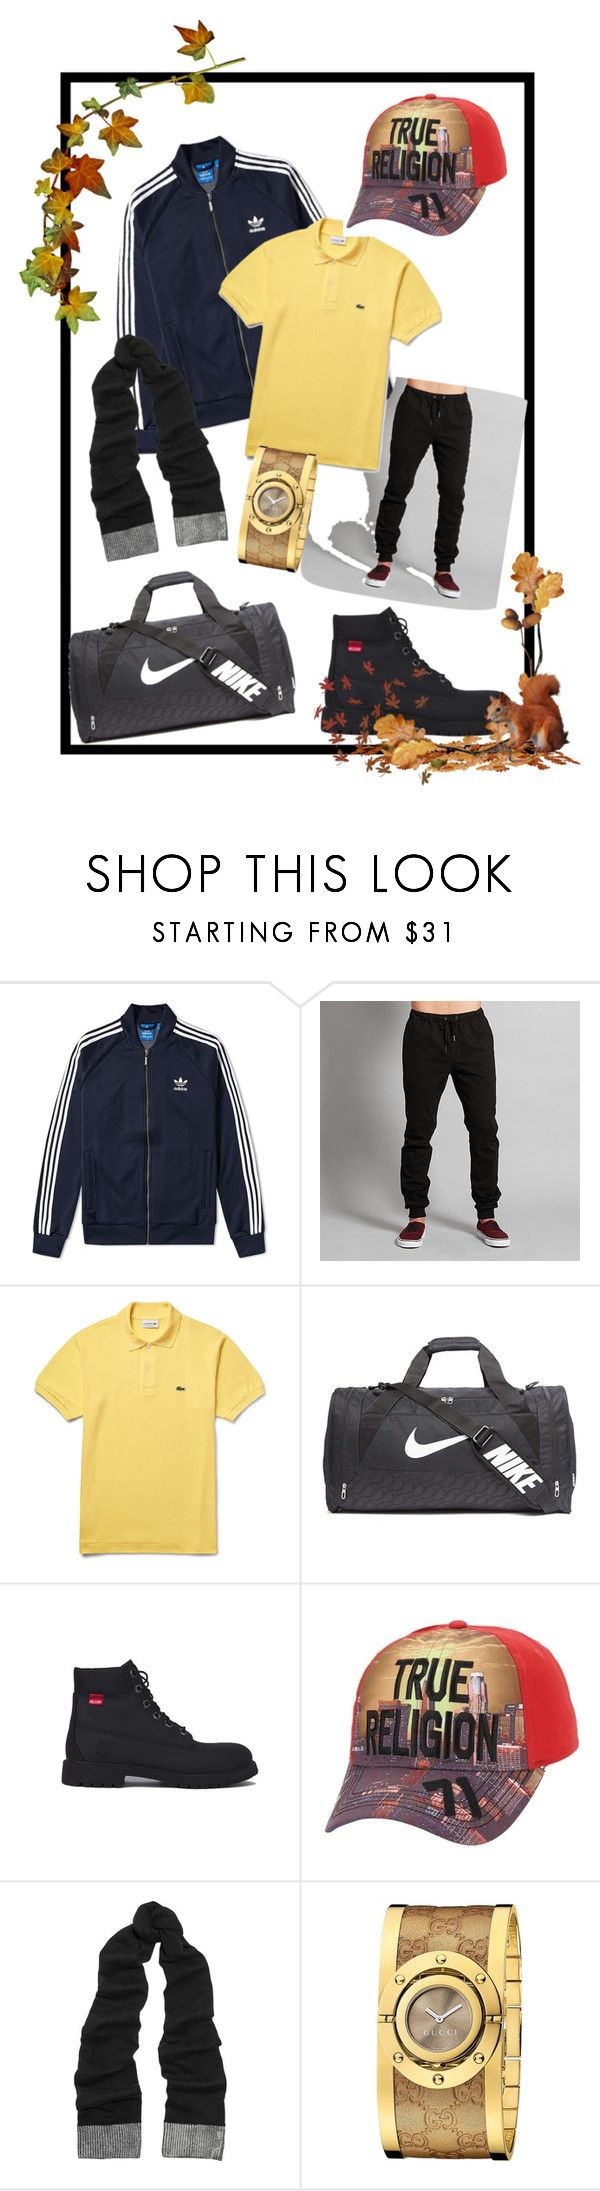 """""""It's lit"""" by fashionablenzm ❤ liked on Polyvore featuring adidas, Adam Levine, Lacoste, NIKE, Timberland, True Religion, MICHAEL Michael Kors and Gucci"""